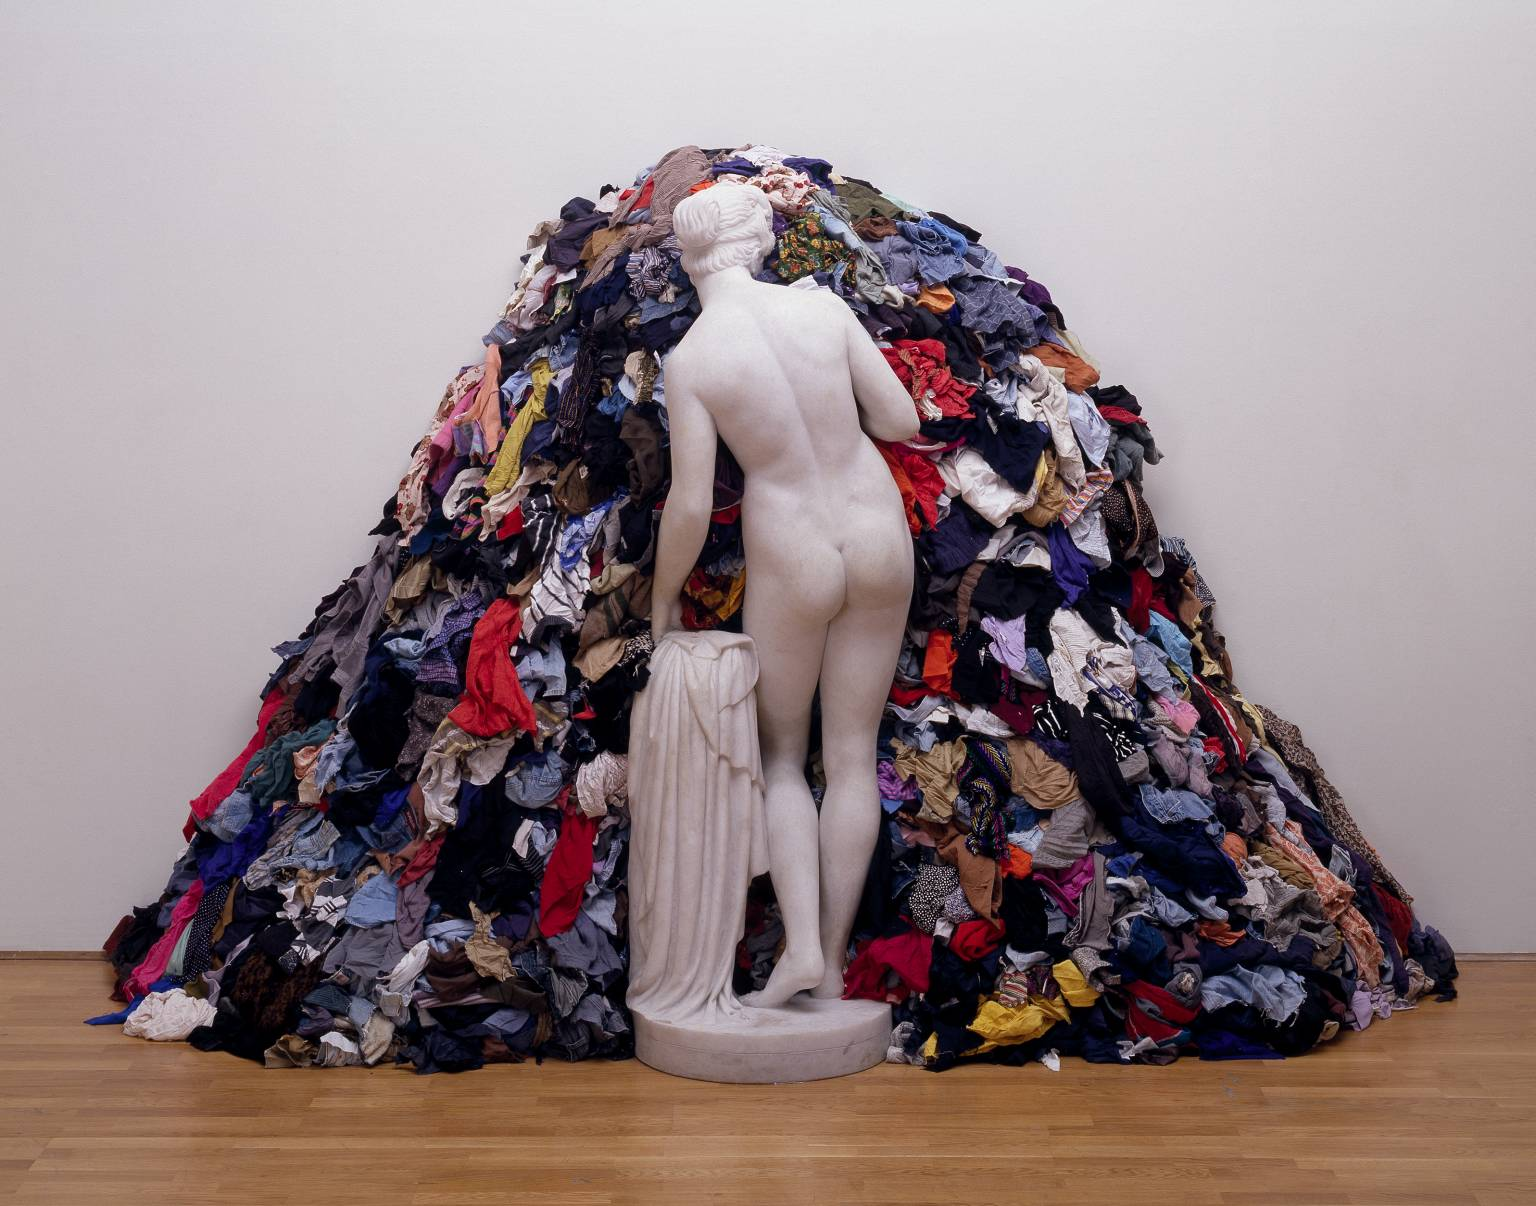 Michelangelo Pistoletto (1967, 1974)  Venus of the Rags.  Marble and textiles.